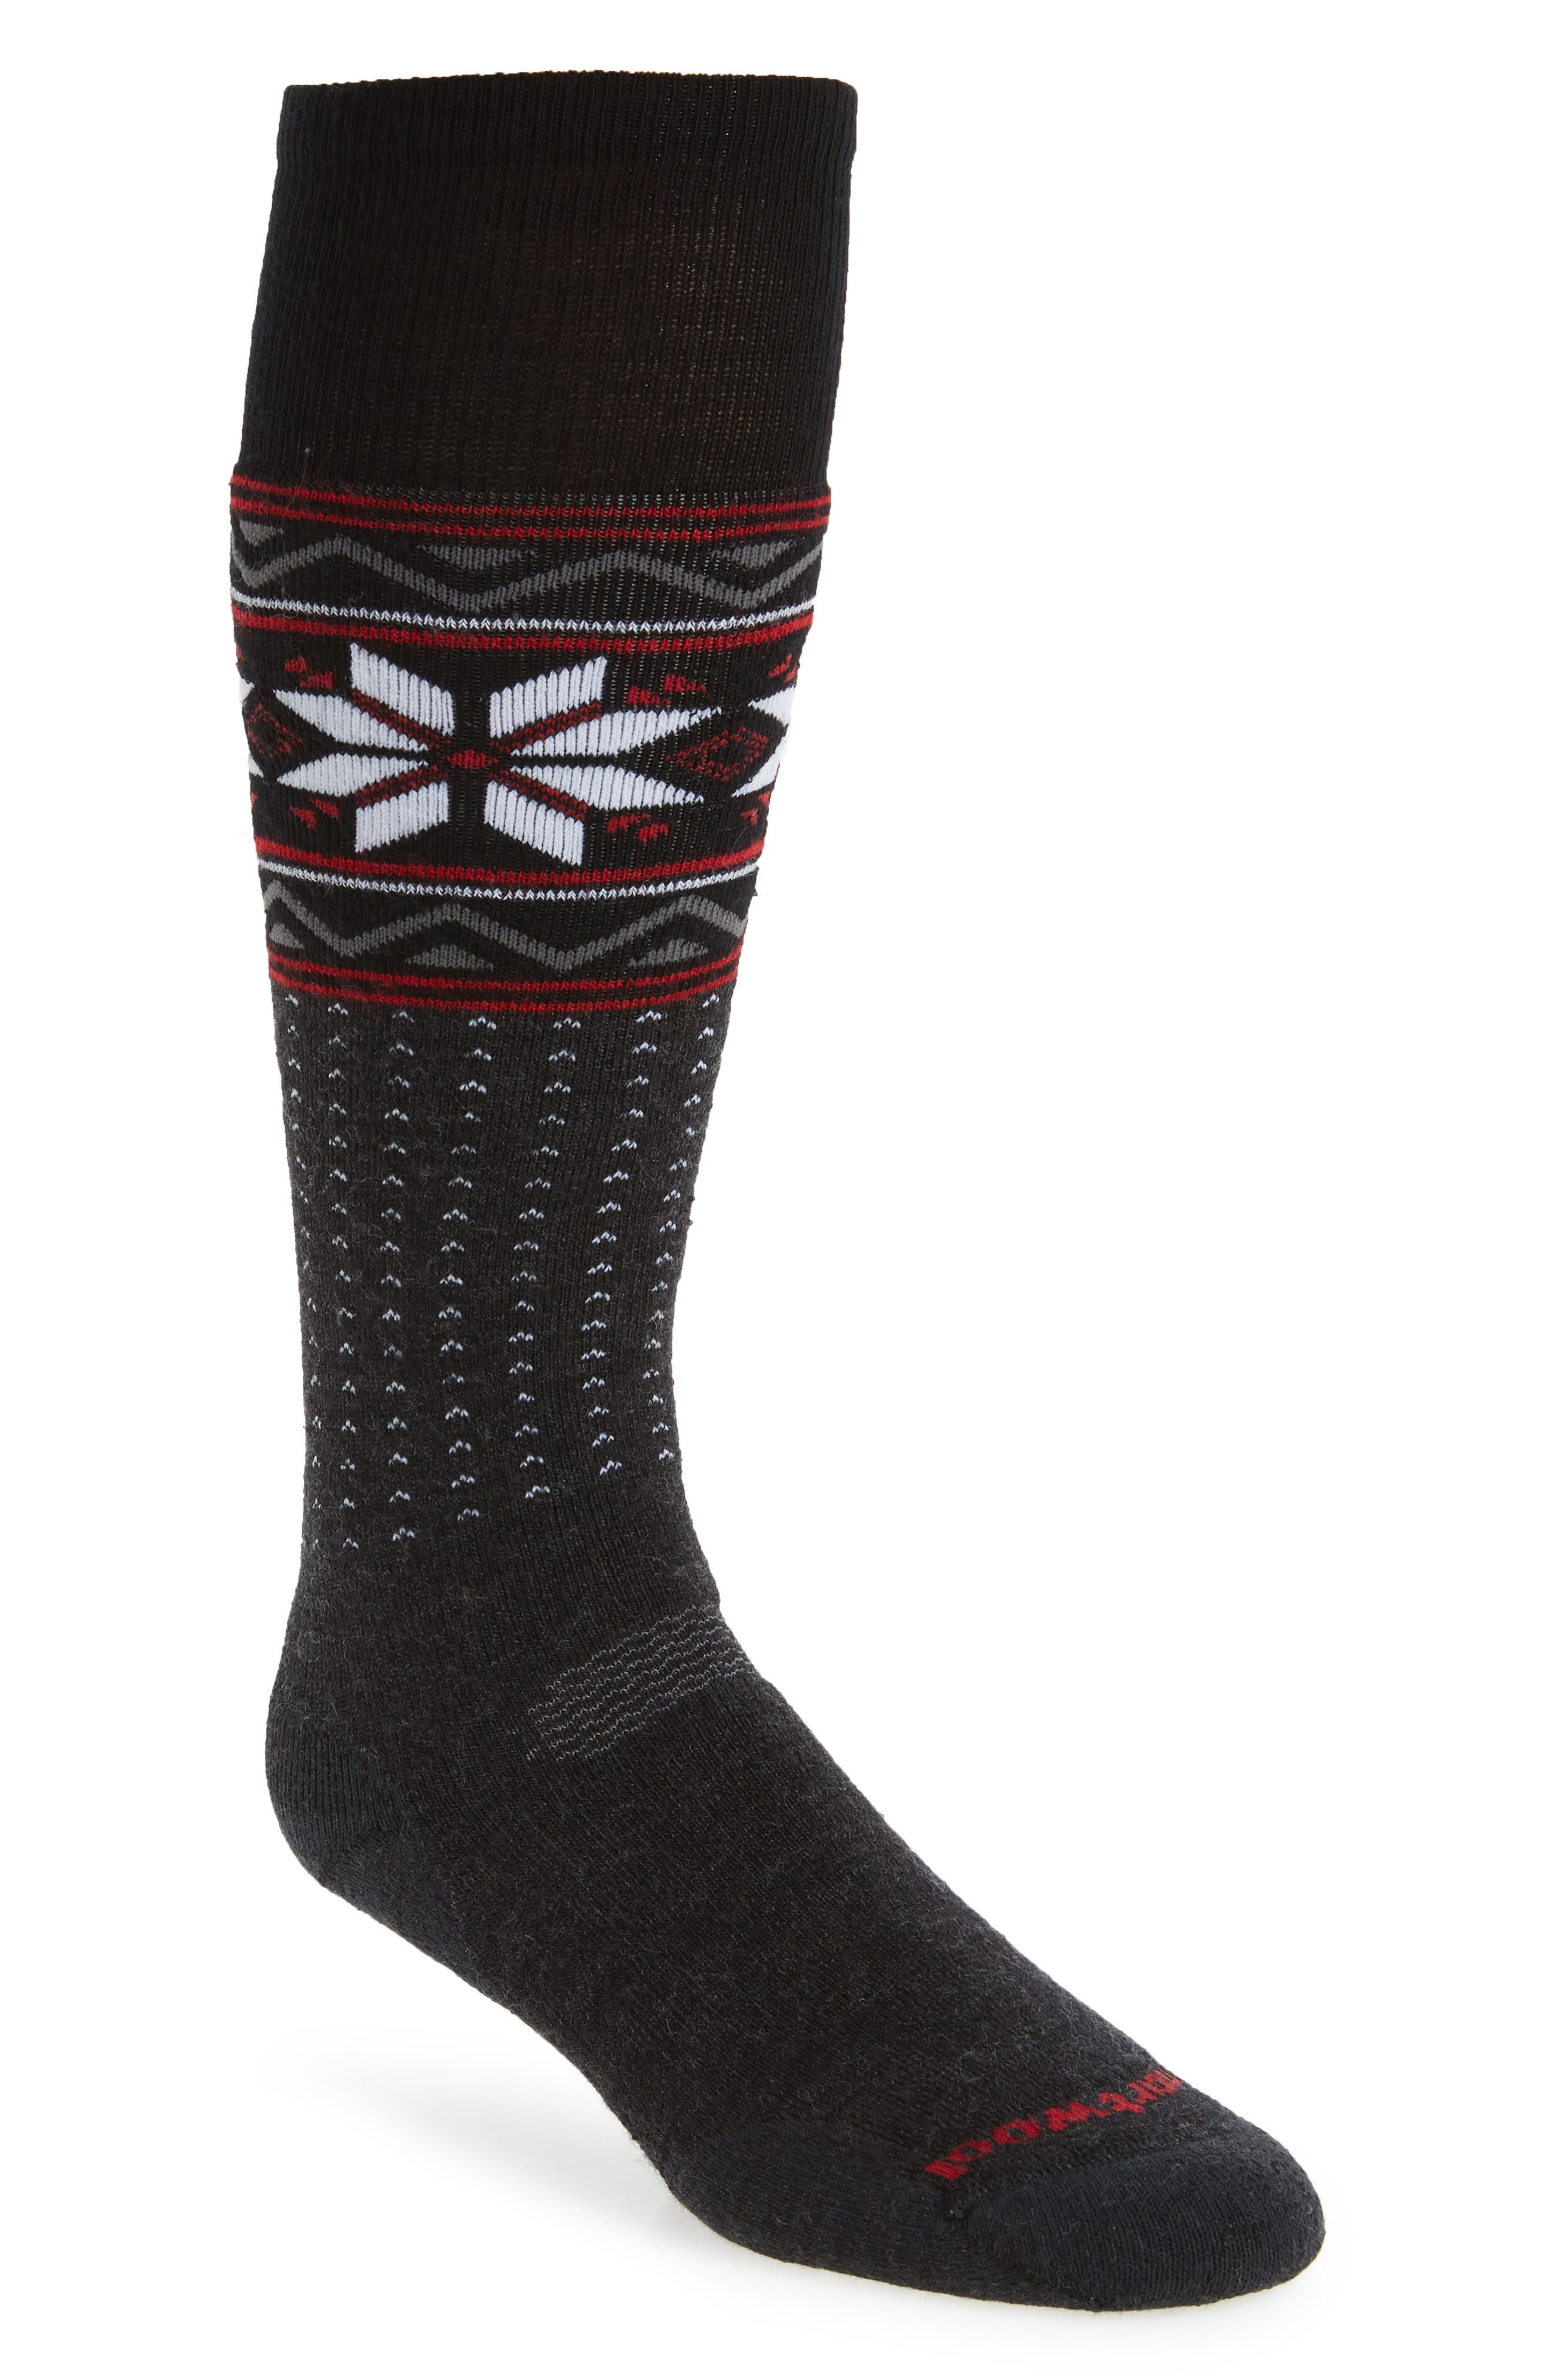 PhD Slopestyle Socks,                             Main thumbnail 1, color,                             Charcoal